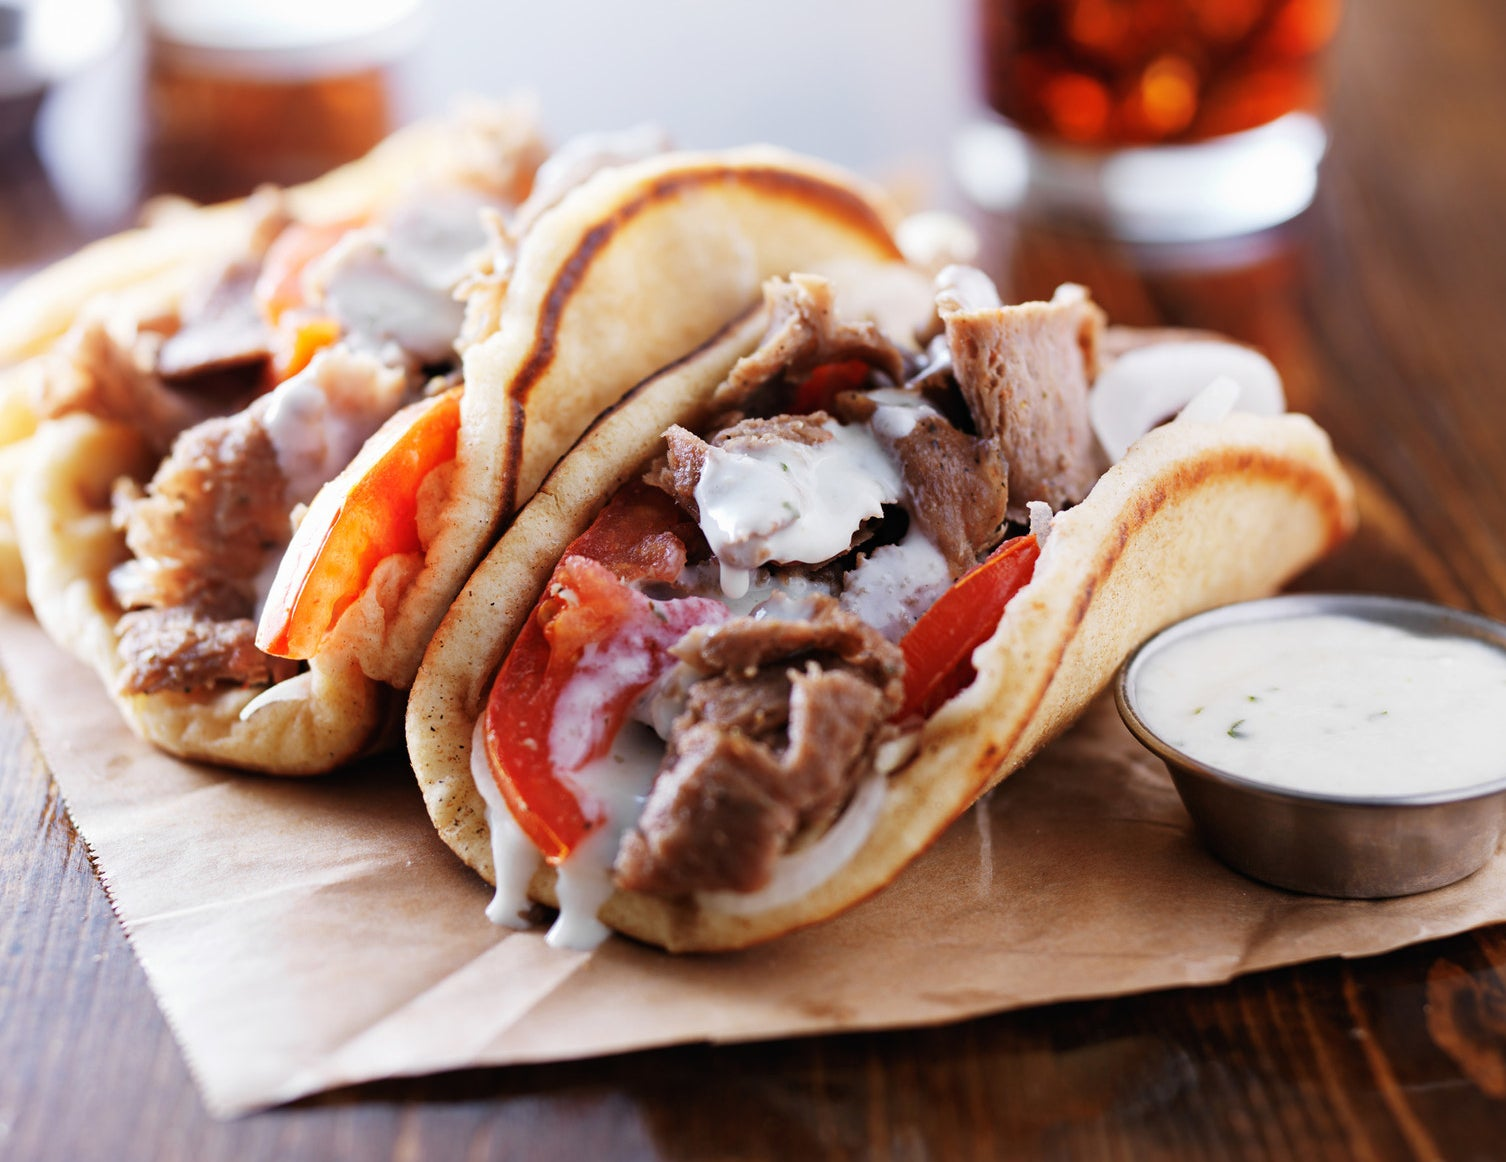 Most popular order: Shawarma